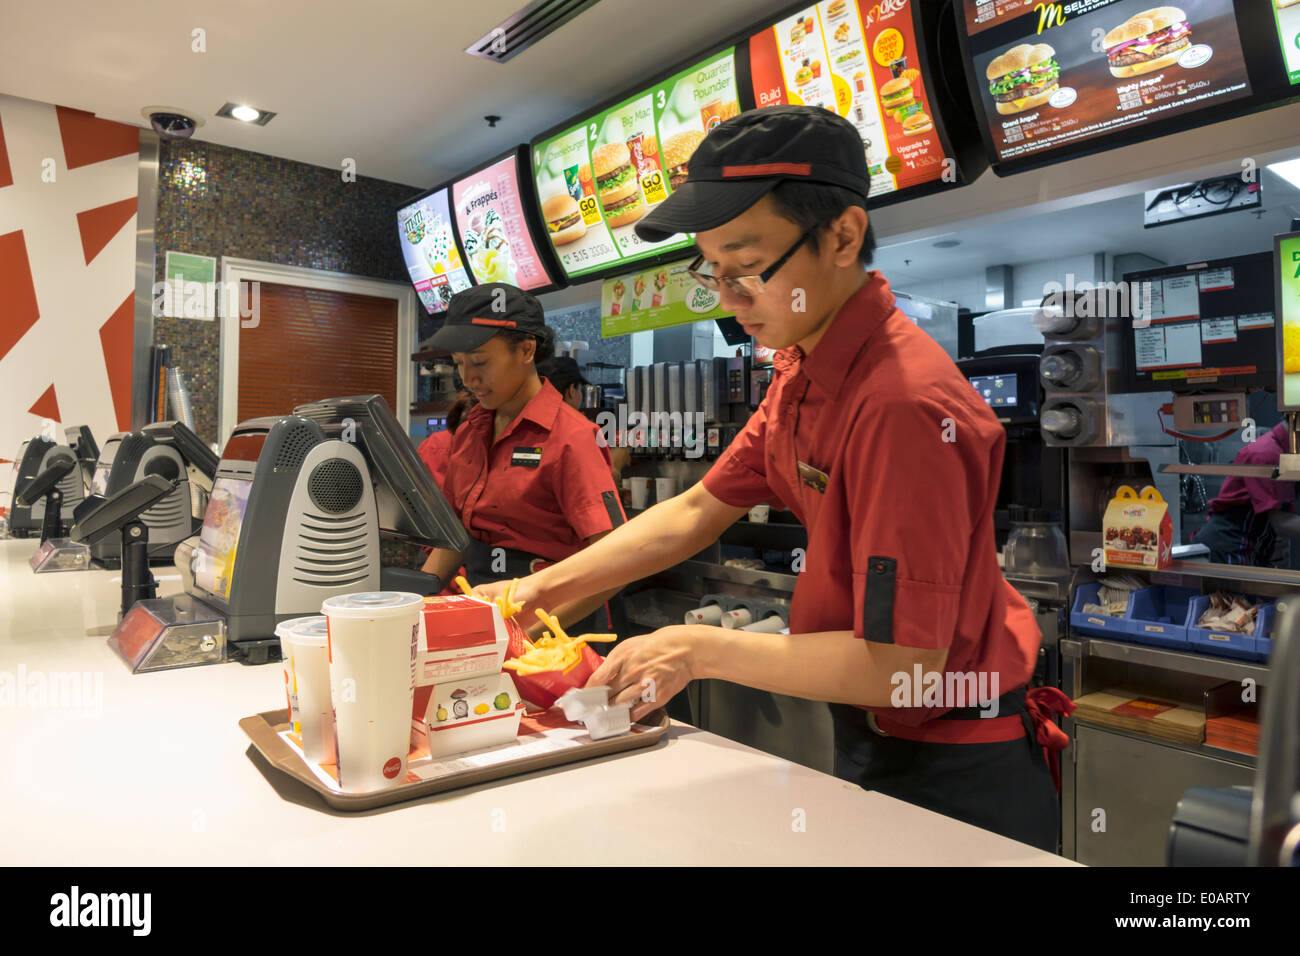 Sydney Australia NSW New South Wales CBD Central Business District Circular Quay McDonald's restaurant fast food counter ordering Asian man job employ - Stock Image